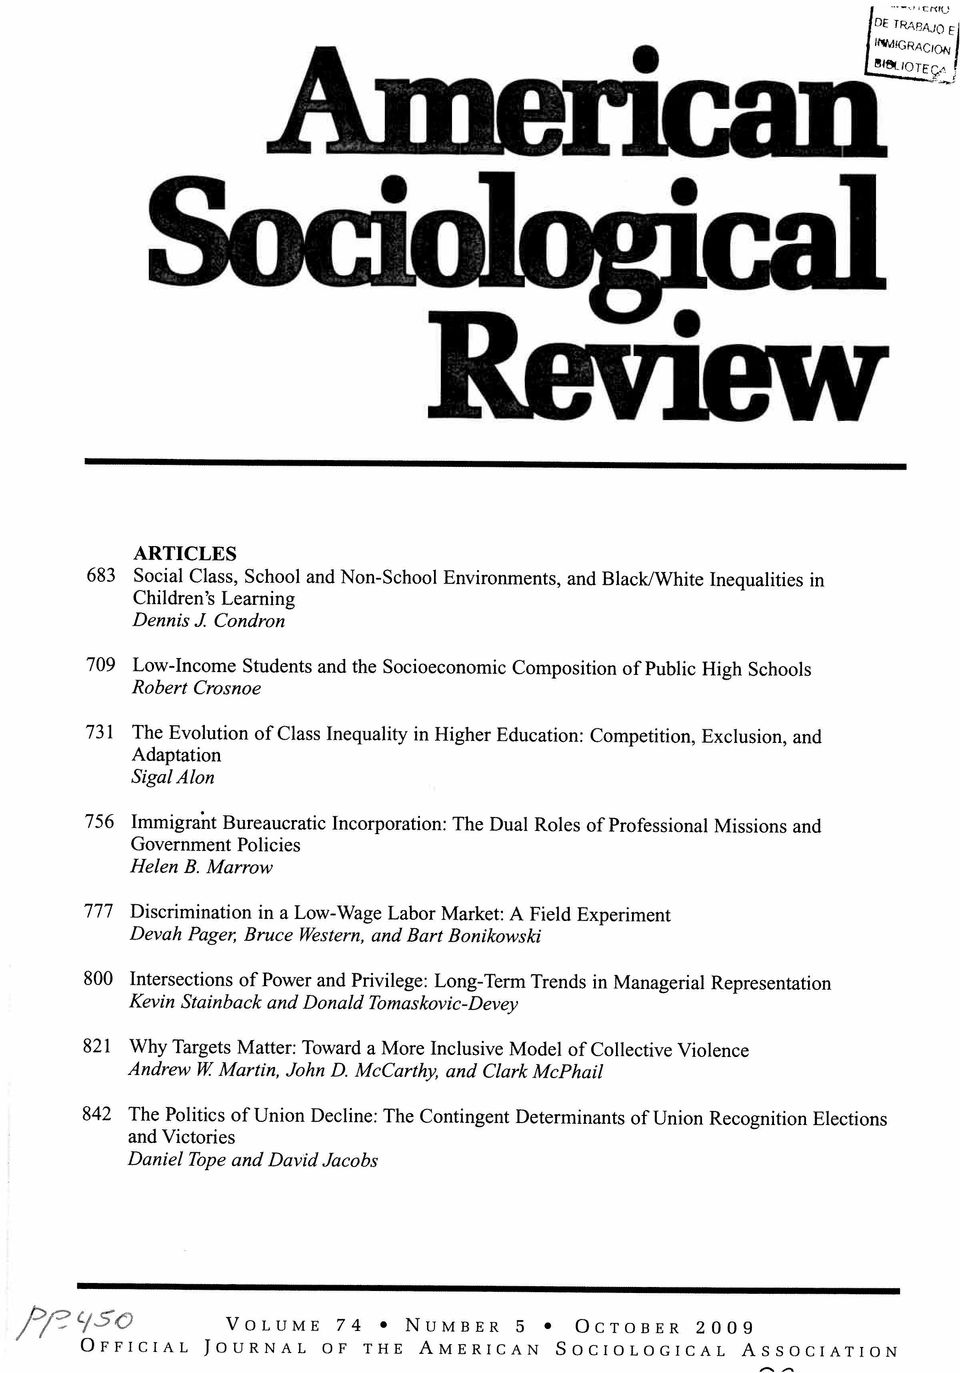 McCarthy, and Clark McPhail 821 Why Targets Matter: Toward a More Inclusive Model of Collective Violence 800 Intersections of Power and Privilege: Long-Term Trends in Managenal Representation Kevin